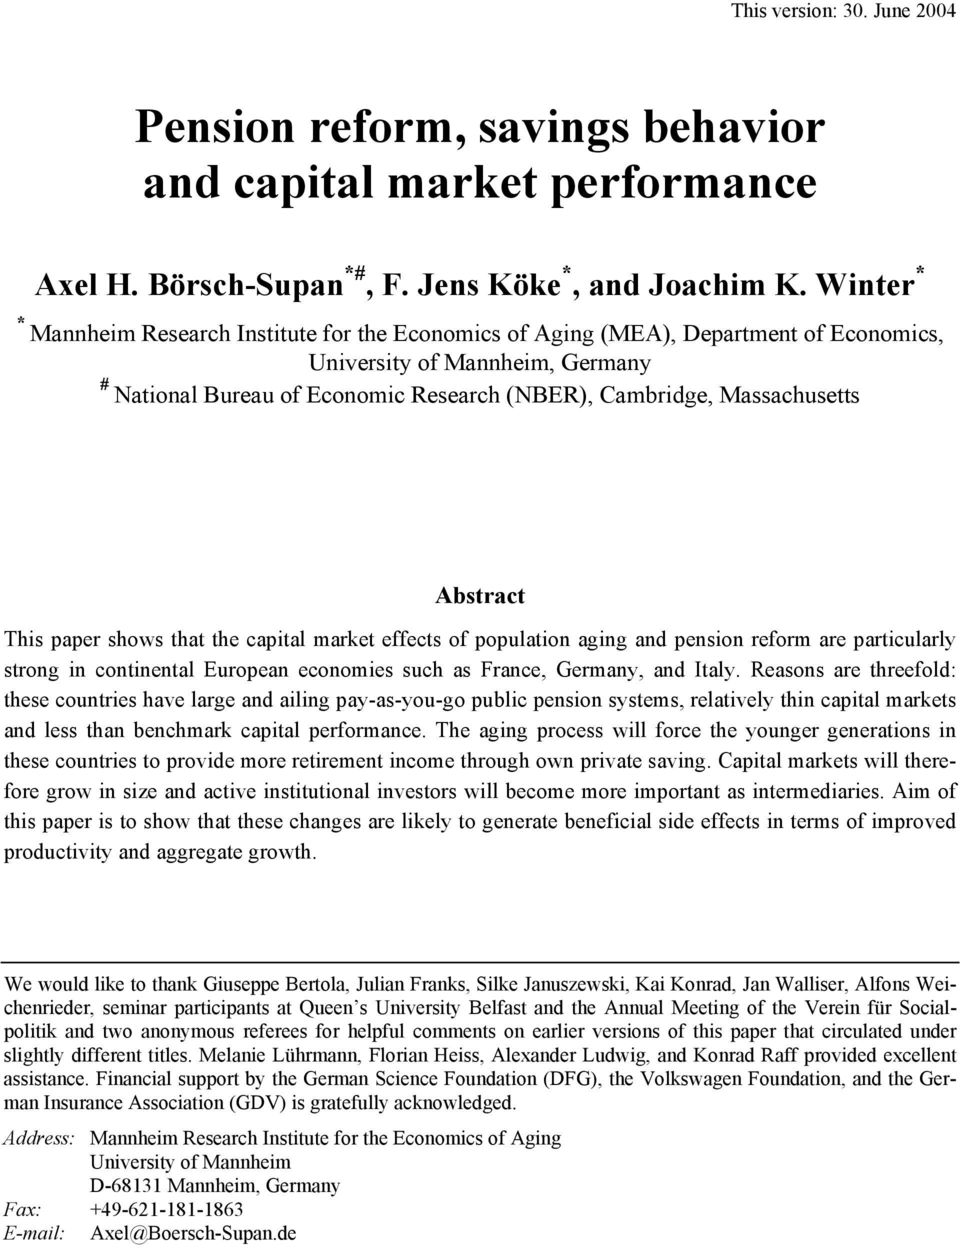 Massachusetts Abstract This paper shows that the capital market effects of population aging and pension reform are particularly strong in continental European economies such as France, Germany, and